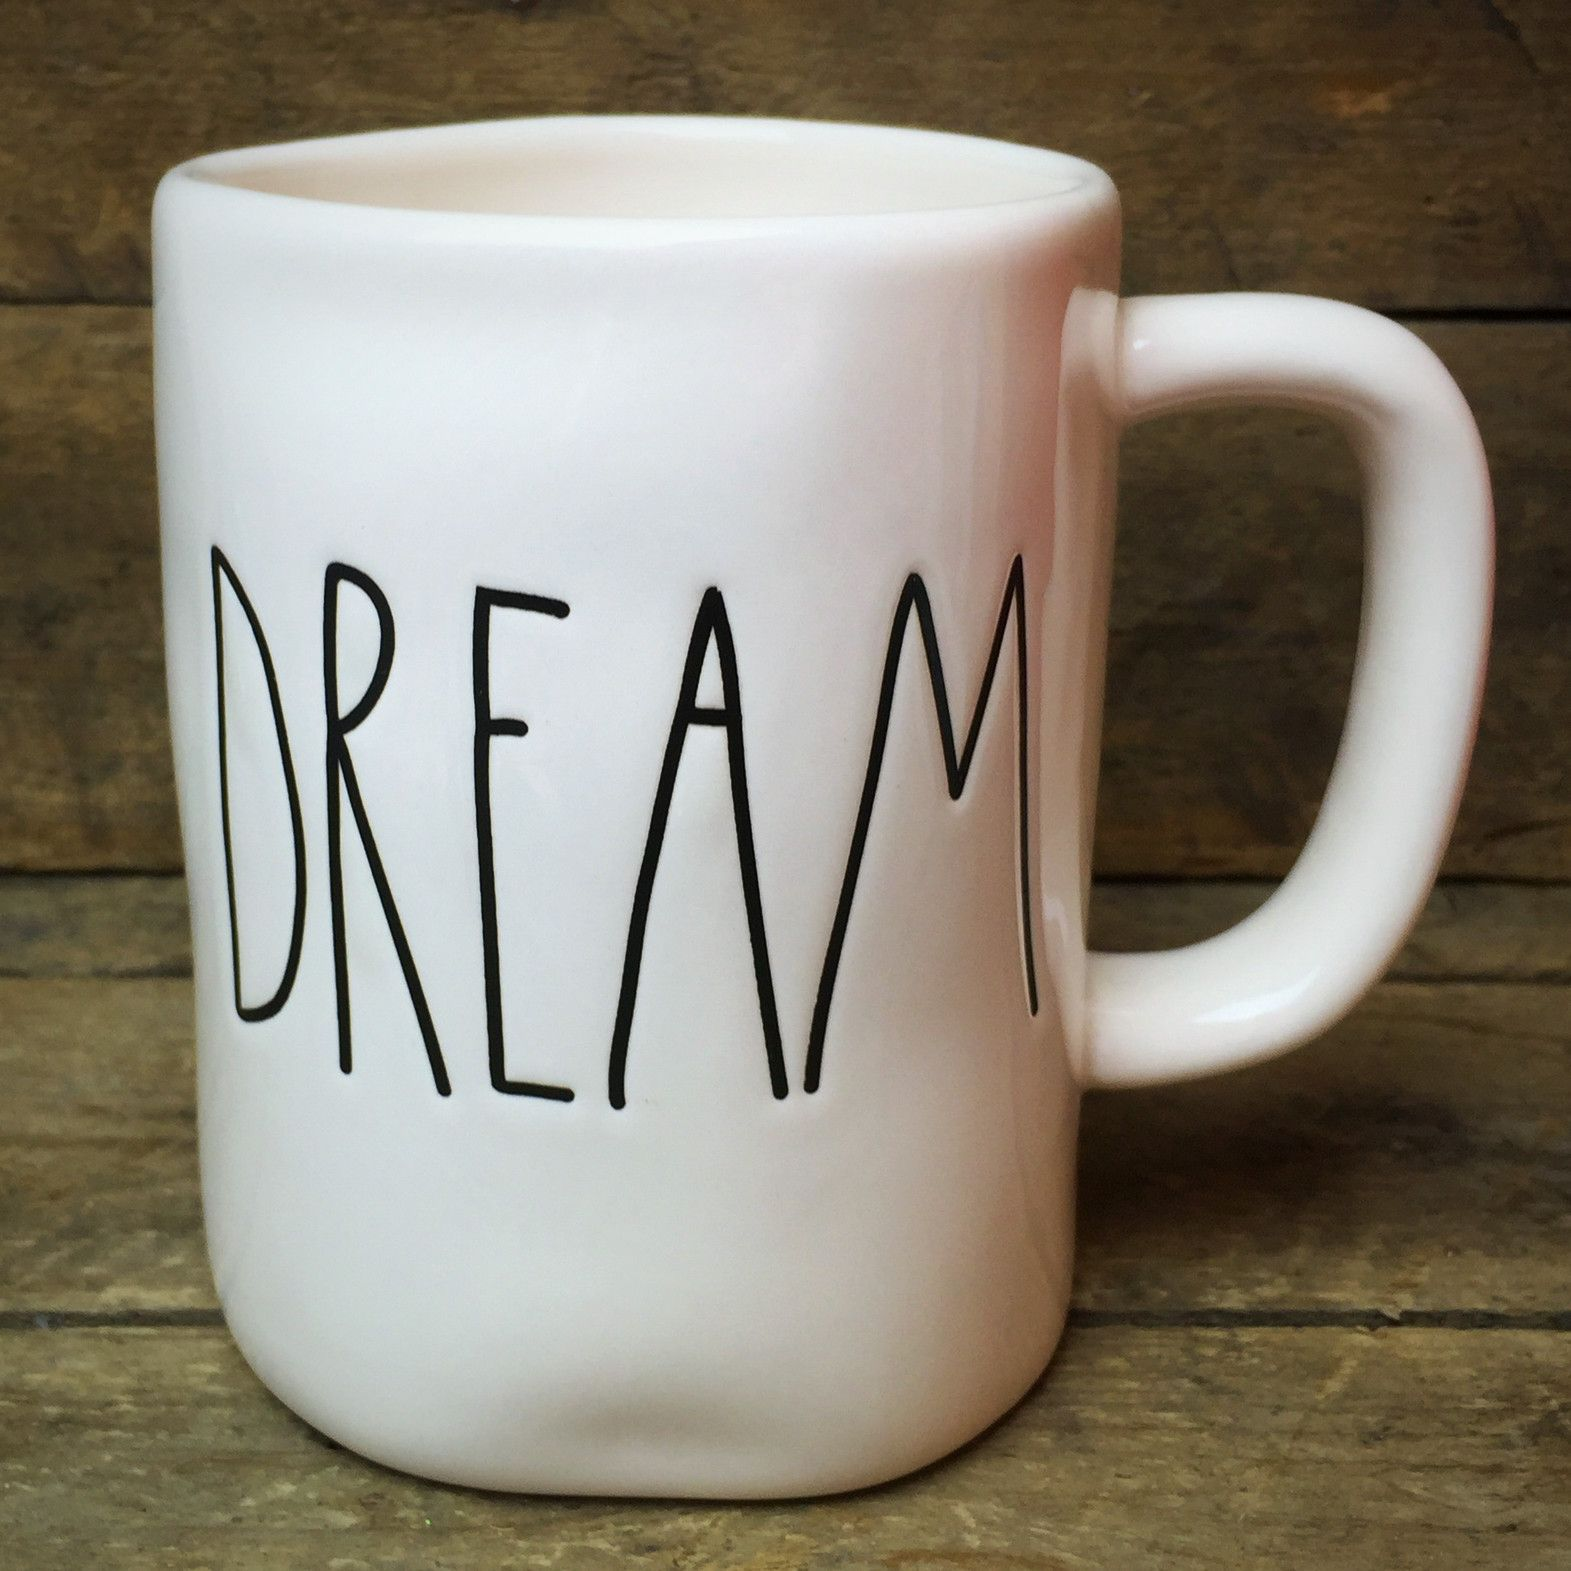 Dream Coffee Mug Magenta By Rae Dunn Rae Dunn Rae Dunn Collection Dunn